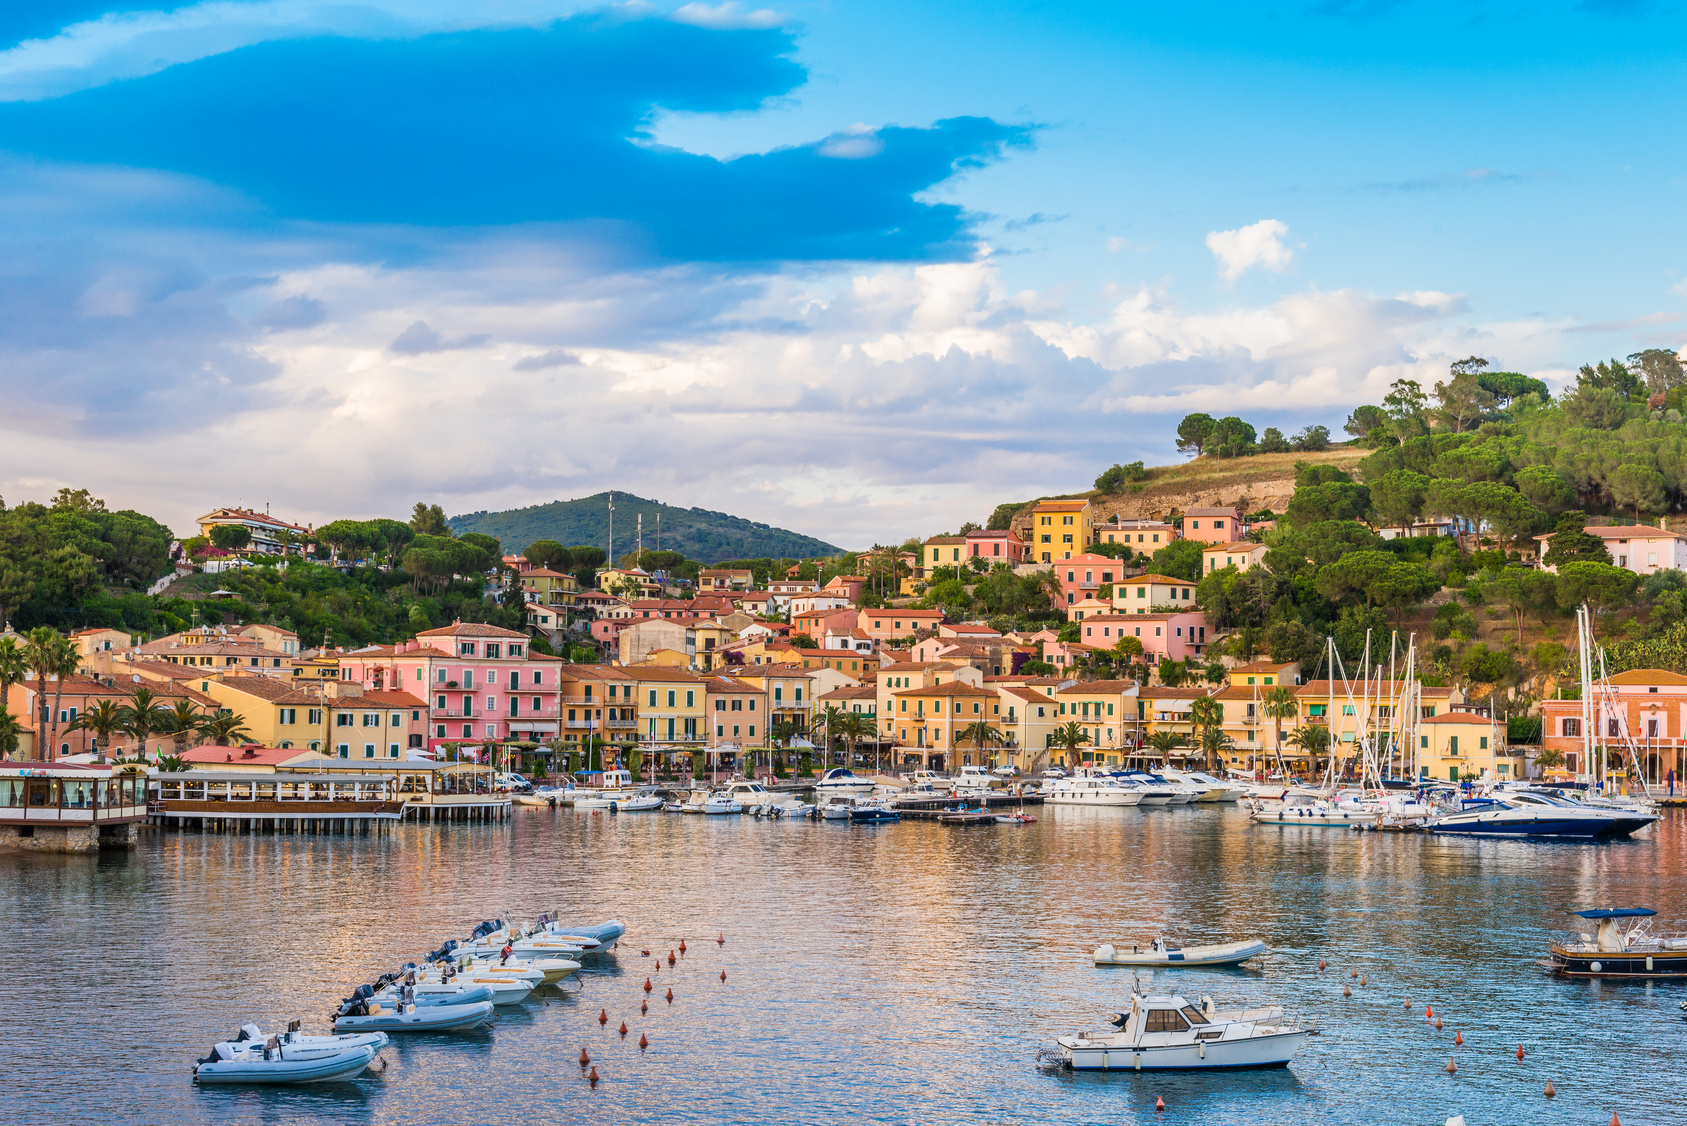 Panoramic view over the famous attraction port of Porto Azzurro at sunset, in Italy - Elba island